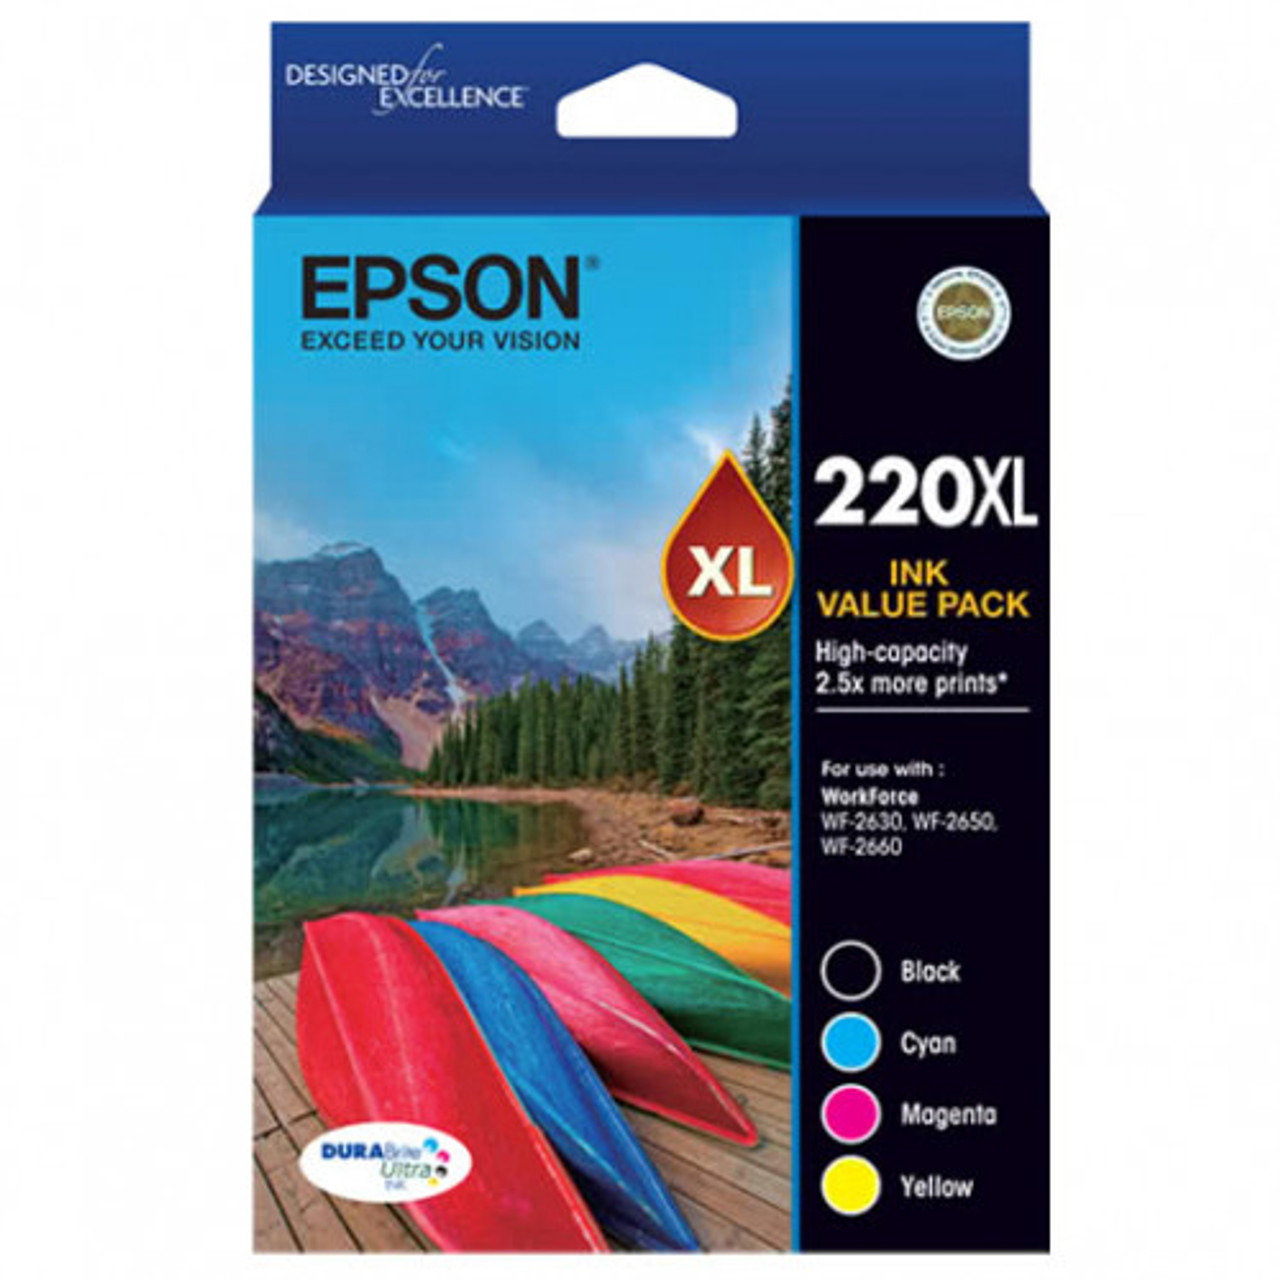 EPSON C13T294692 220XL HIGH YIELD INK CARTRIDGE DURABRITE ULTRA VALUE PACK  OF 4 - BLACK, CYAN, MAGENTA, YELLOW